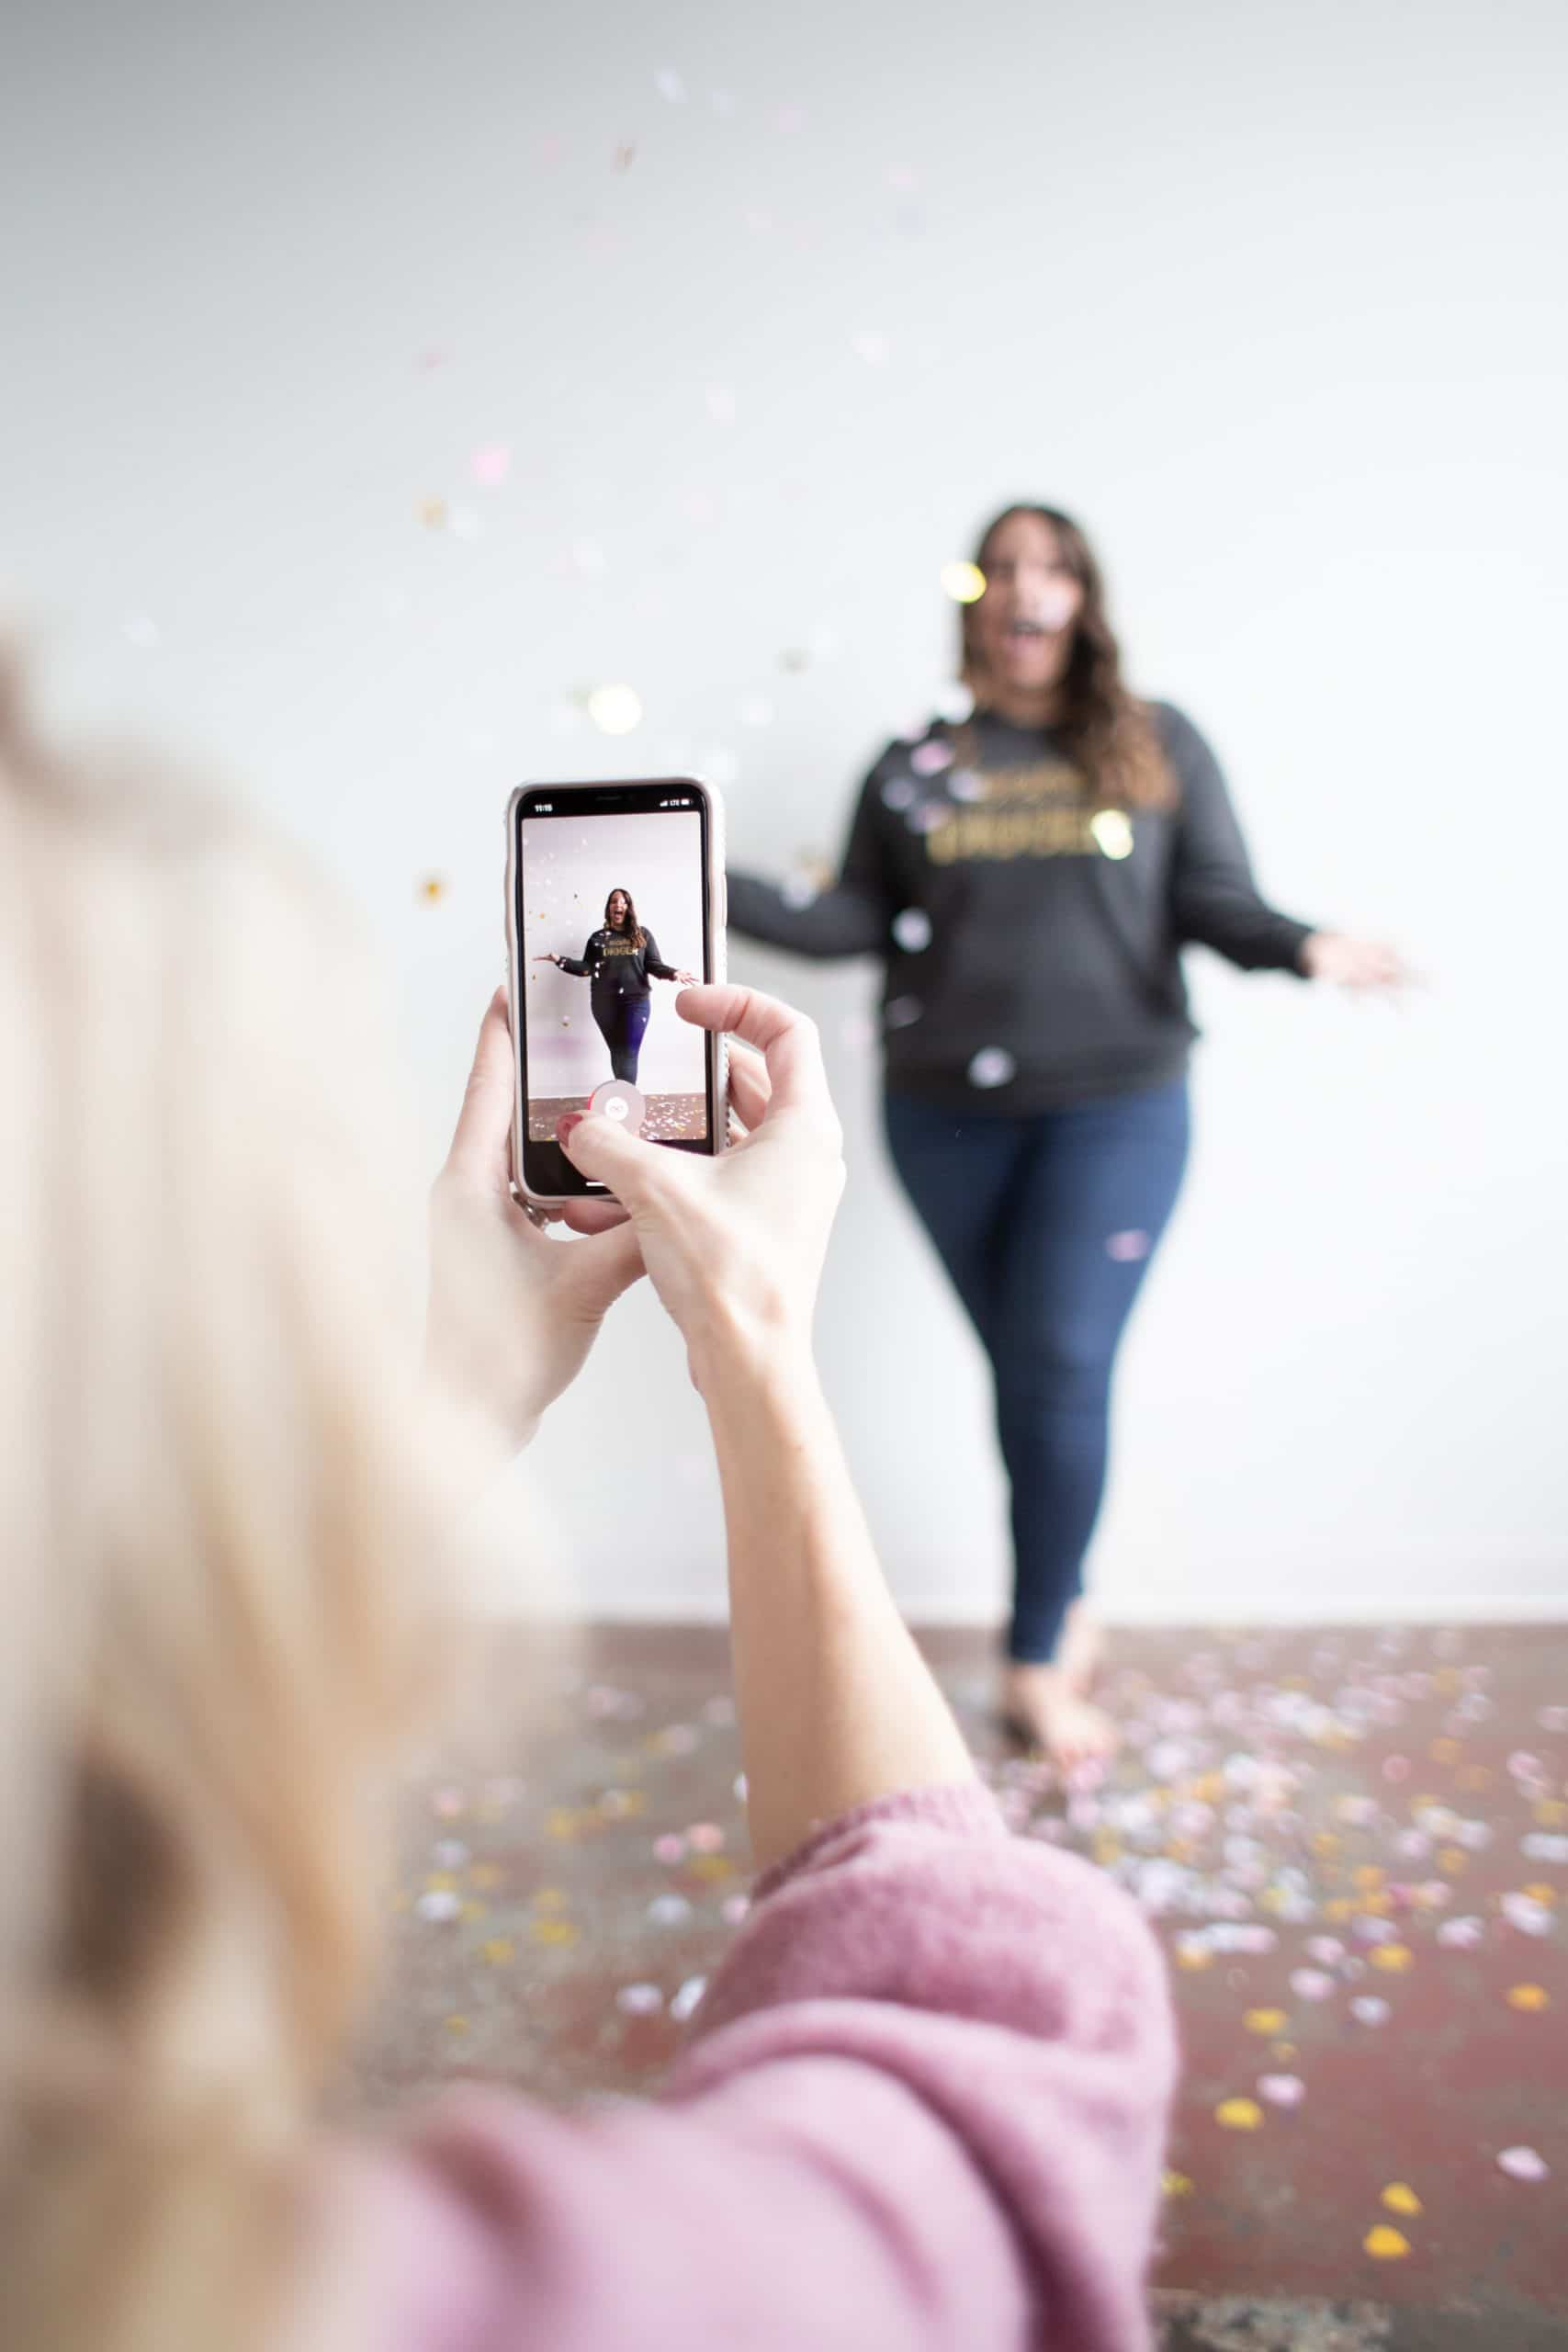 Apps For Instagram Stories That Stand Out (Top 10)